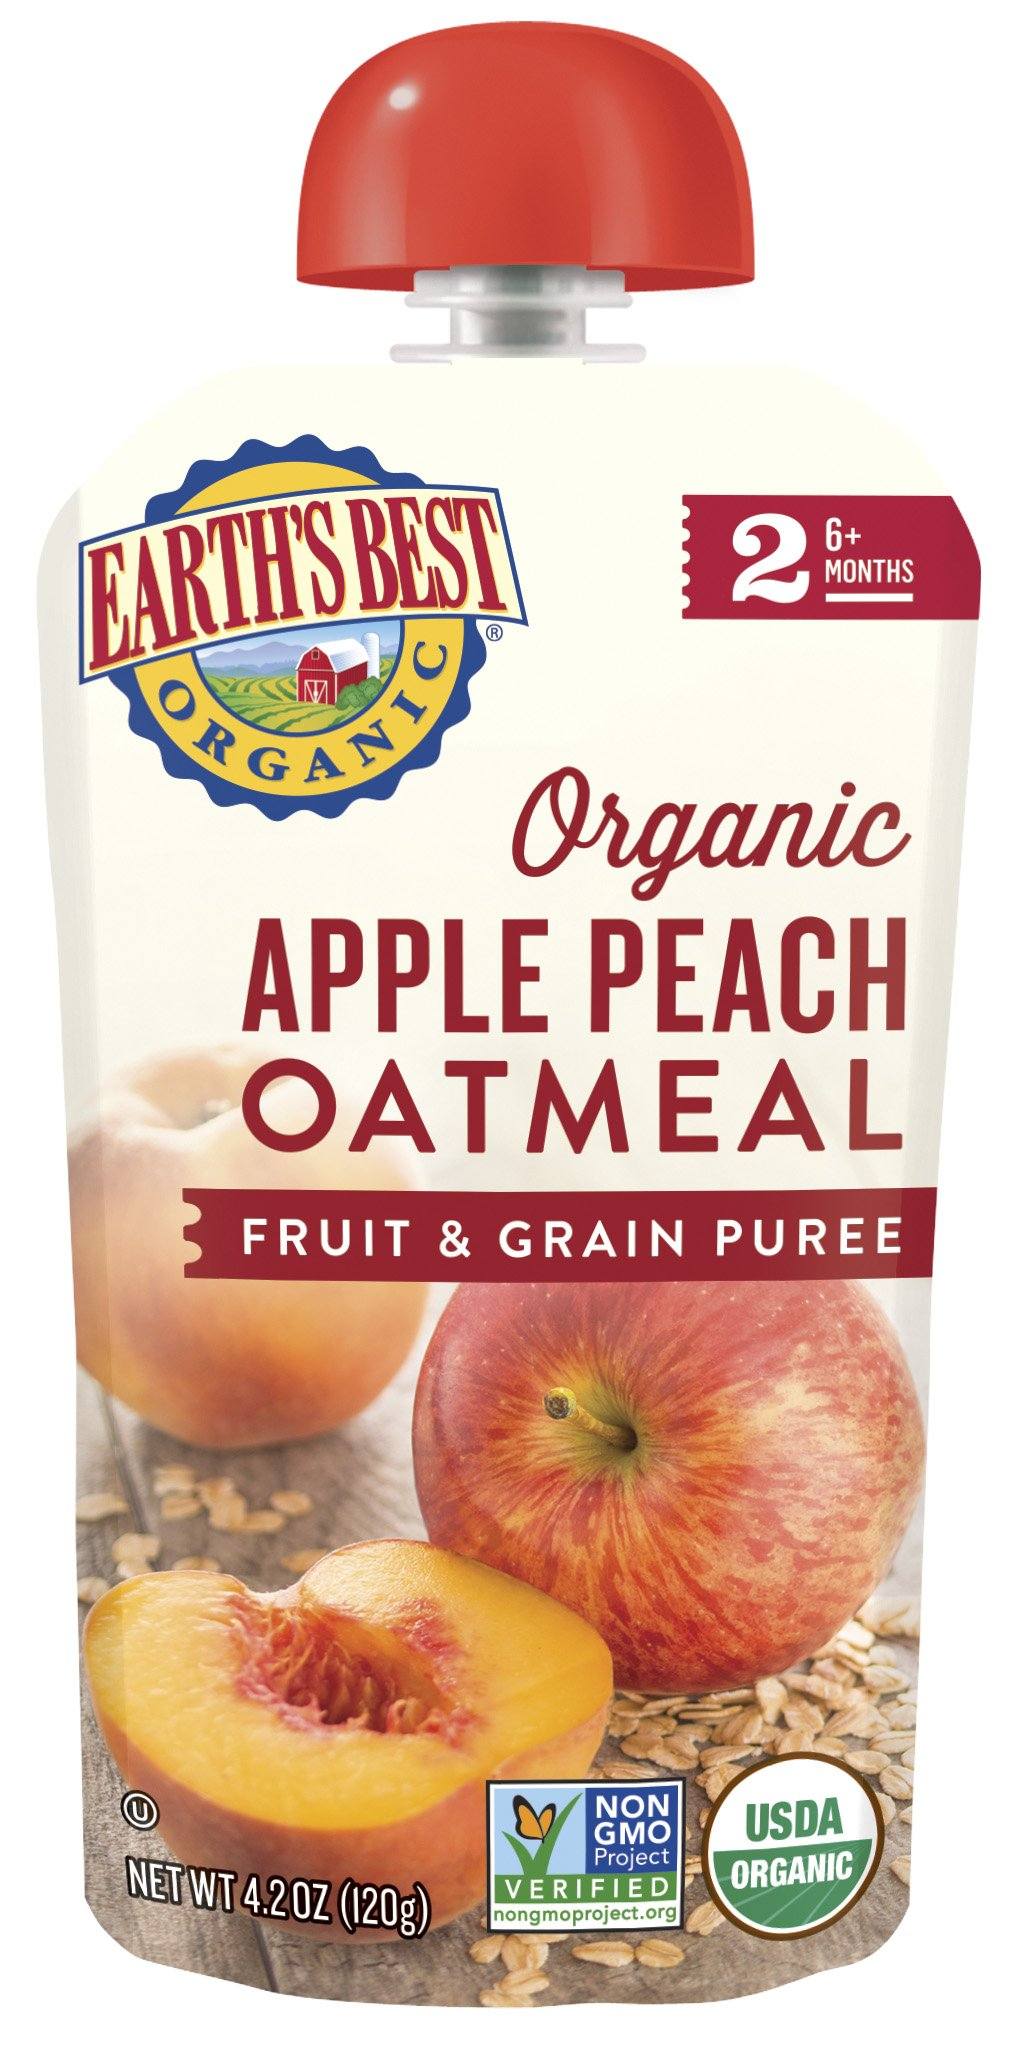 Earth's Best Organic Stage 2 Baby Food, Apple Peach and Oatmeal, 4.2 oz. Pouch (Pack of 12) by Earth's Best (Image #2)